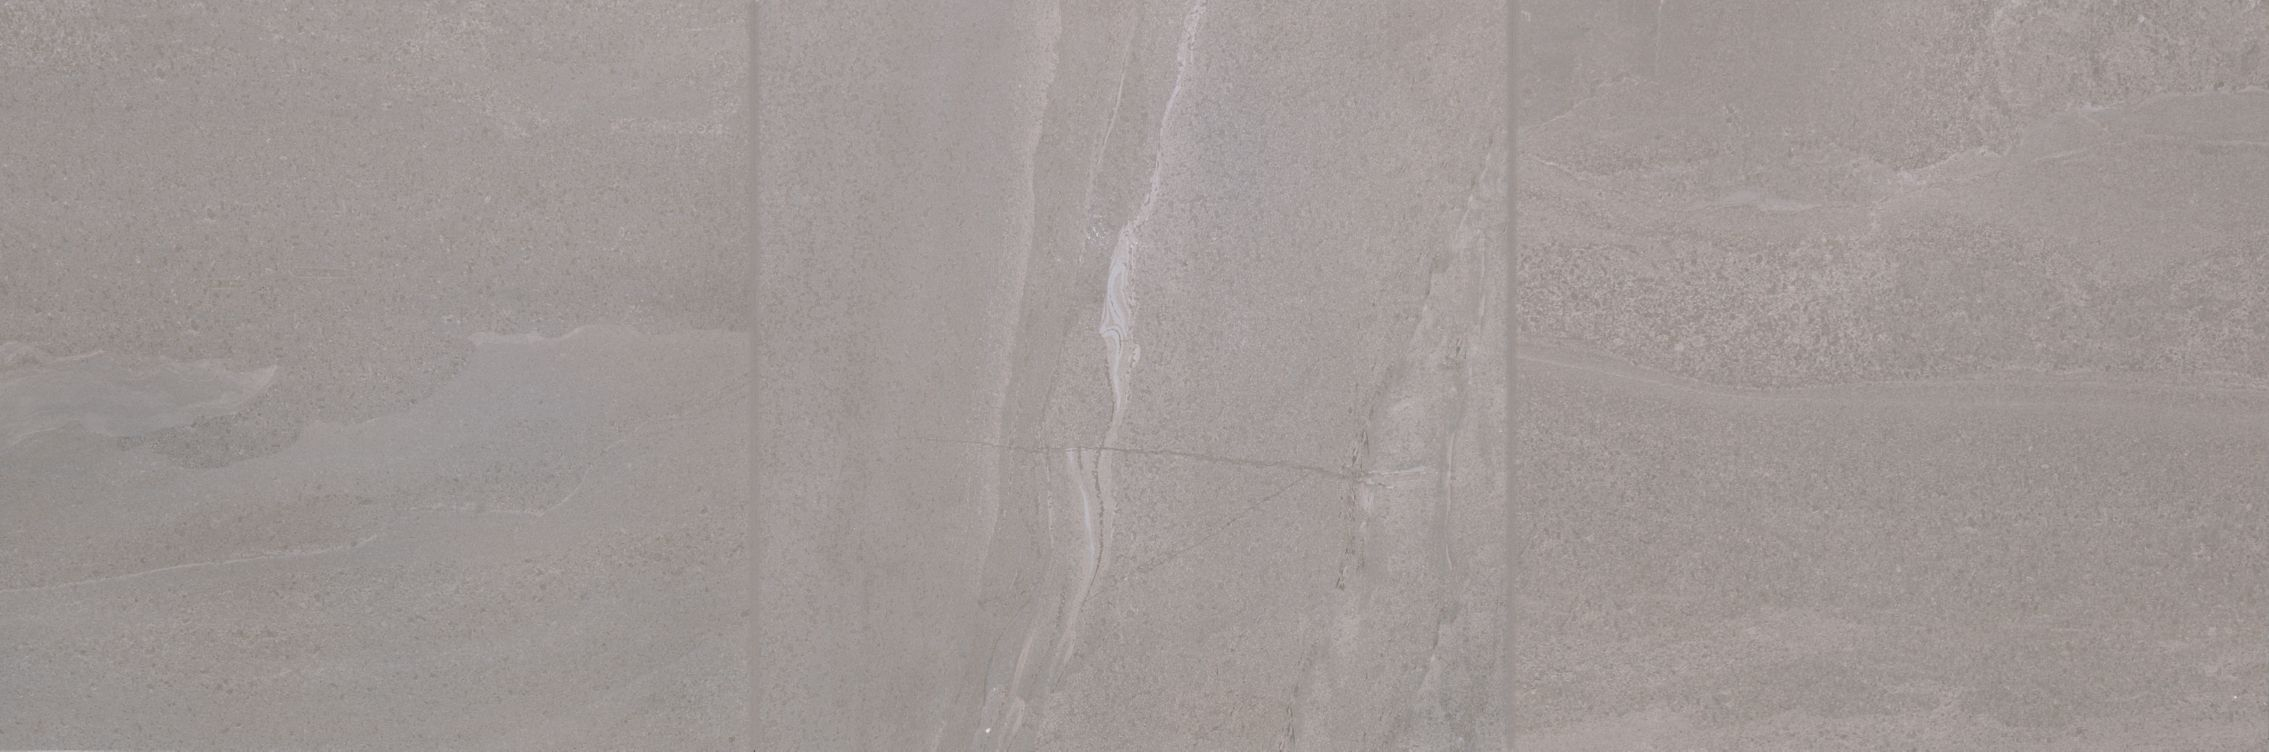 CeramicPorcelainTile GrandTerrace T834F-GB94-24x12-FieldTile-Porcelain LuxuryGrayPolished